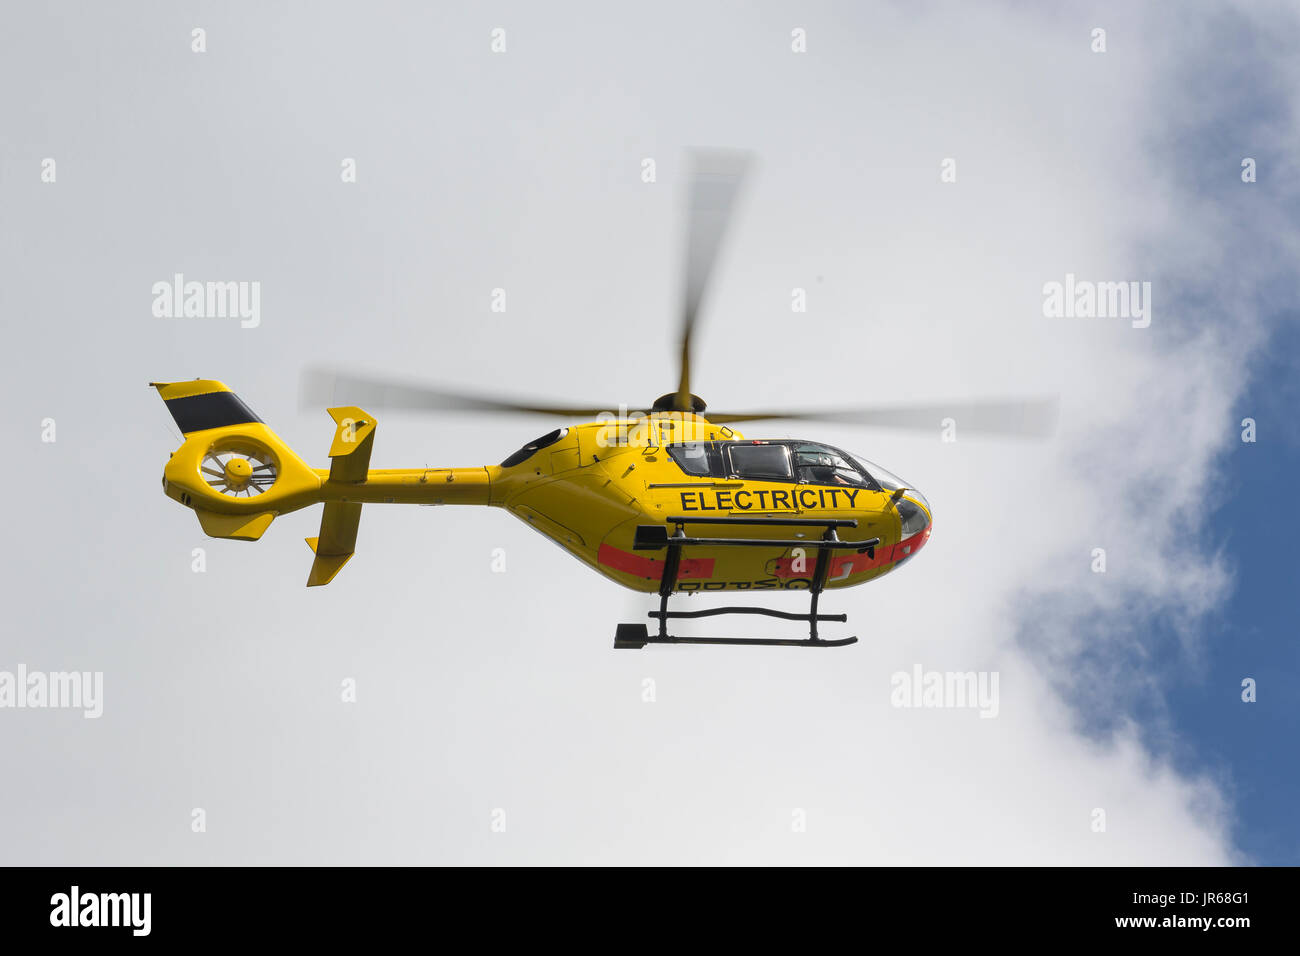 EUROCOPTER DEUTSCHLAND GMBH helicopter, registered G-WPDD, flying low as it surveys power lines for Western Power - Stock Image